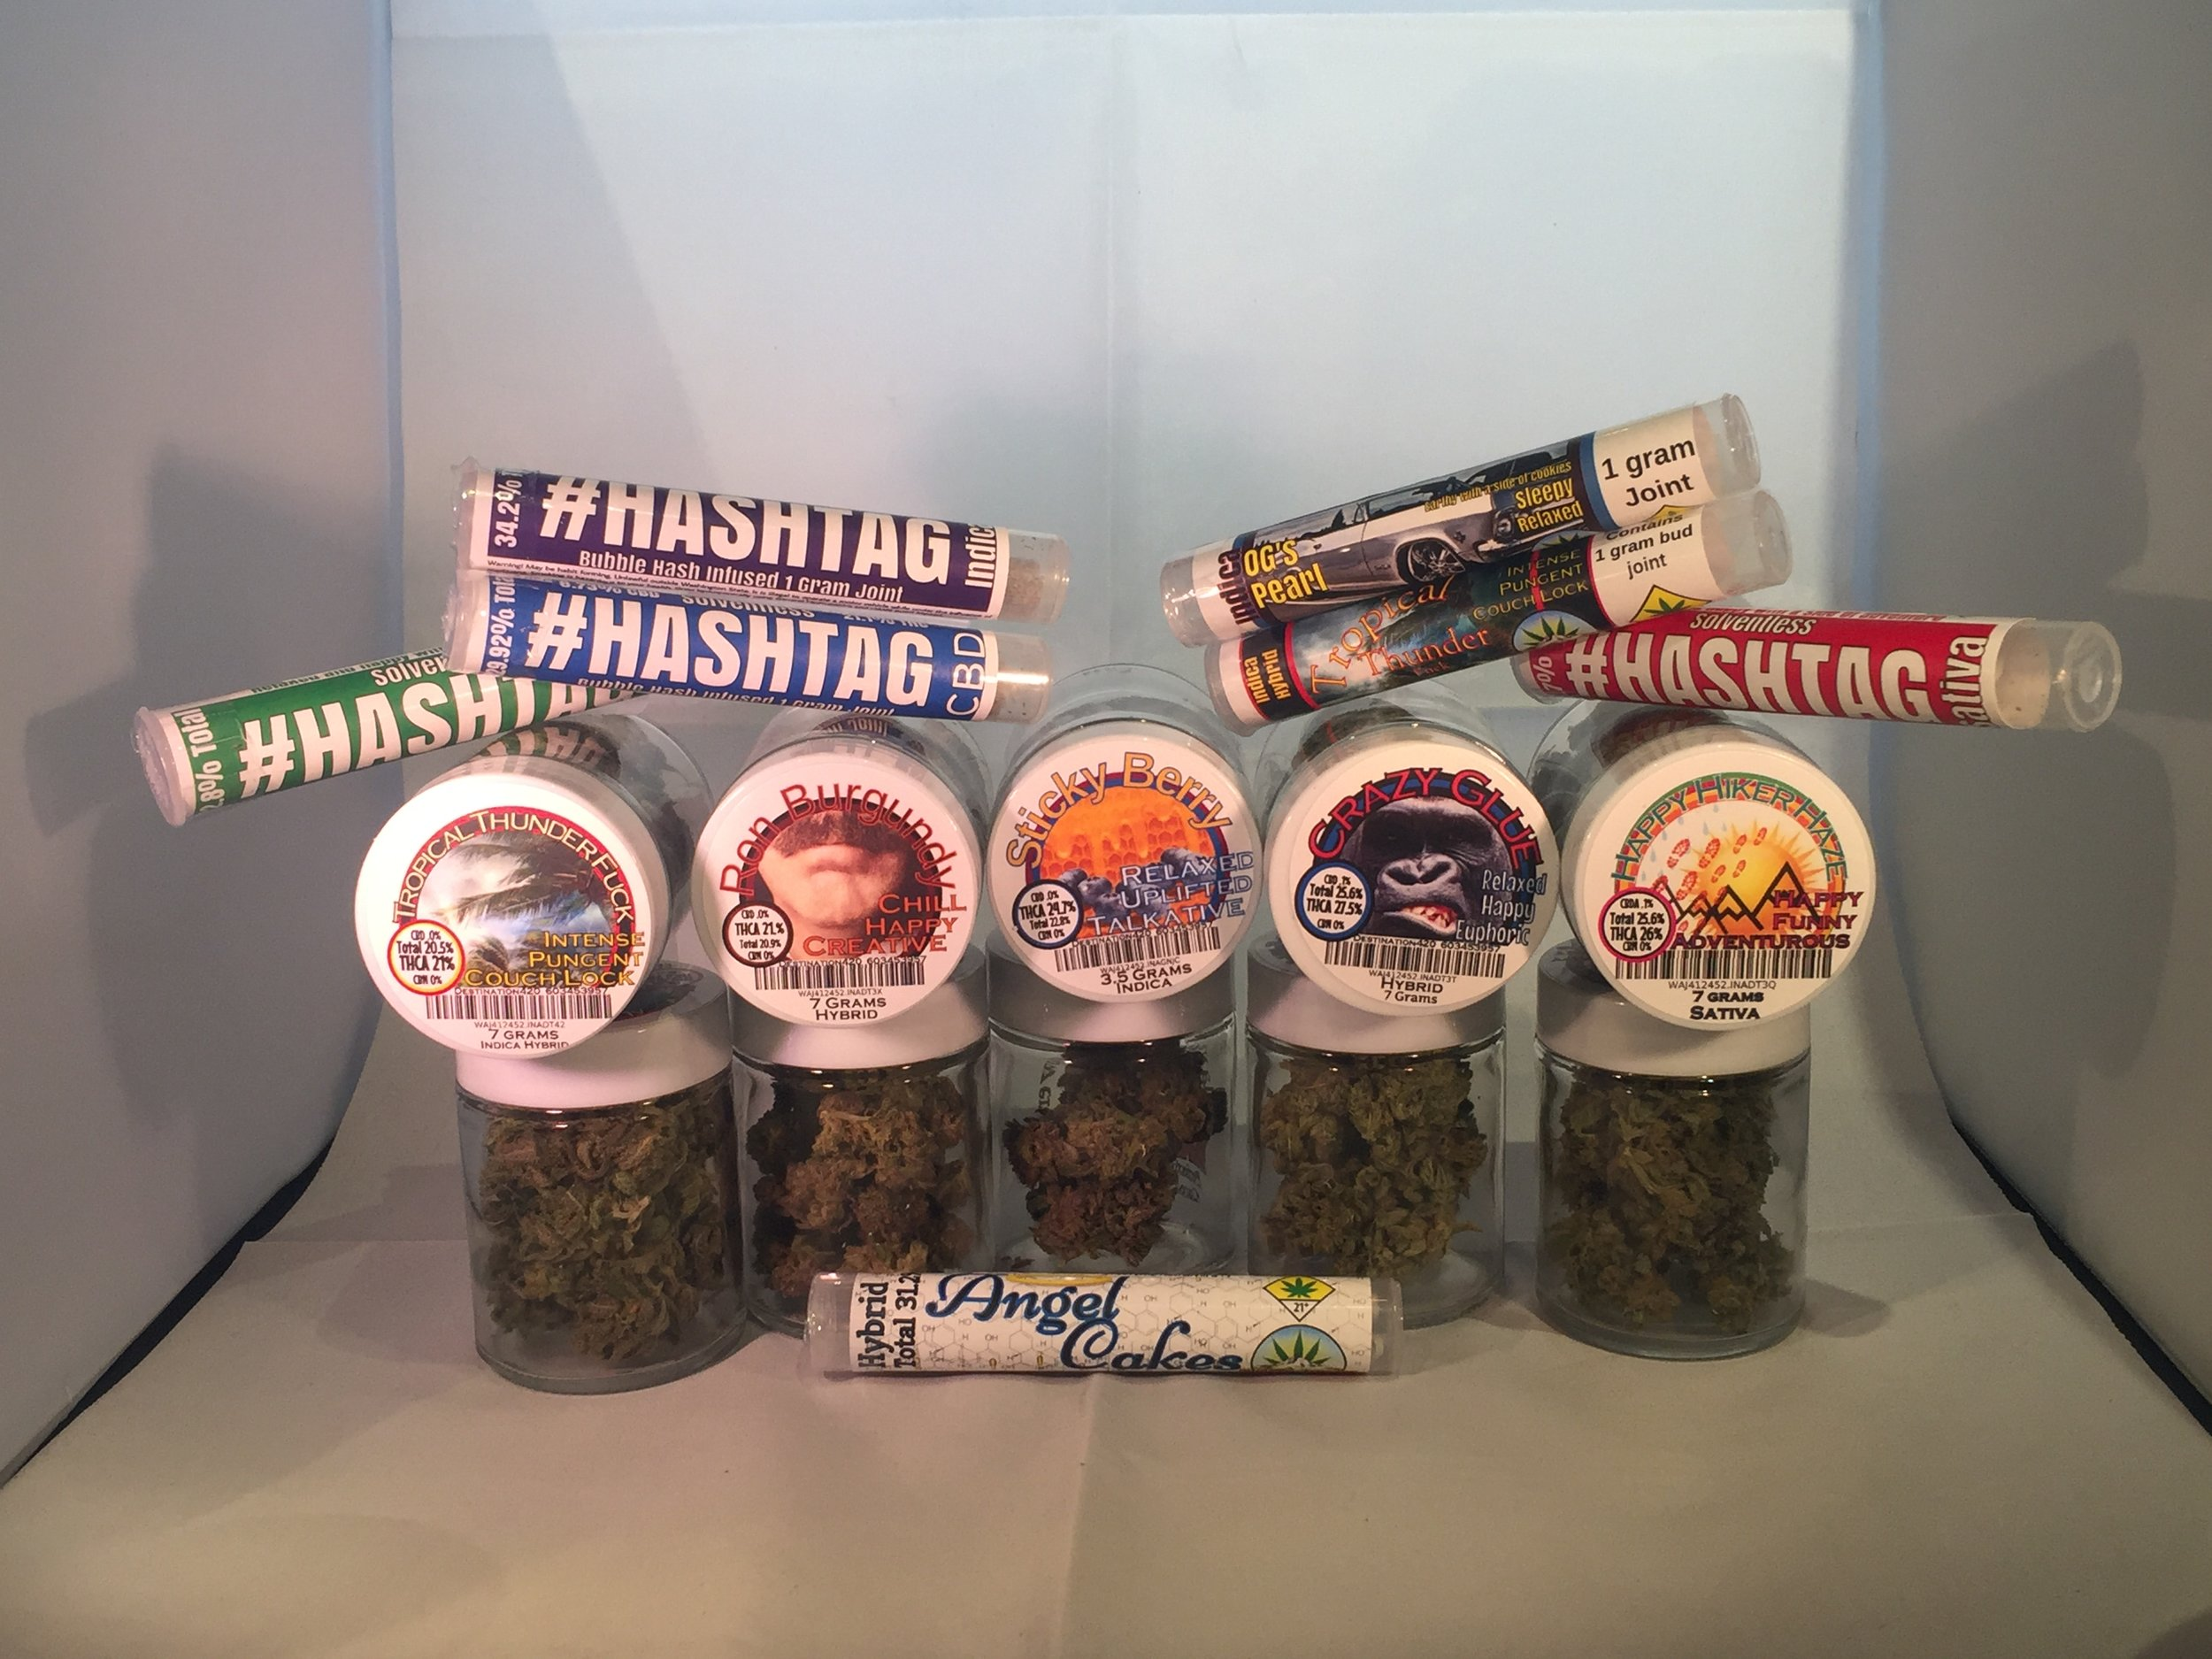 These are some of the smokeable marijuana products that are produced by Hazy Daze Growers. Hazy Daze's newest product in this picture are the #Hashtag Infused Joints. #Hashtag infused joints contain flower and BHO.